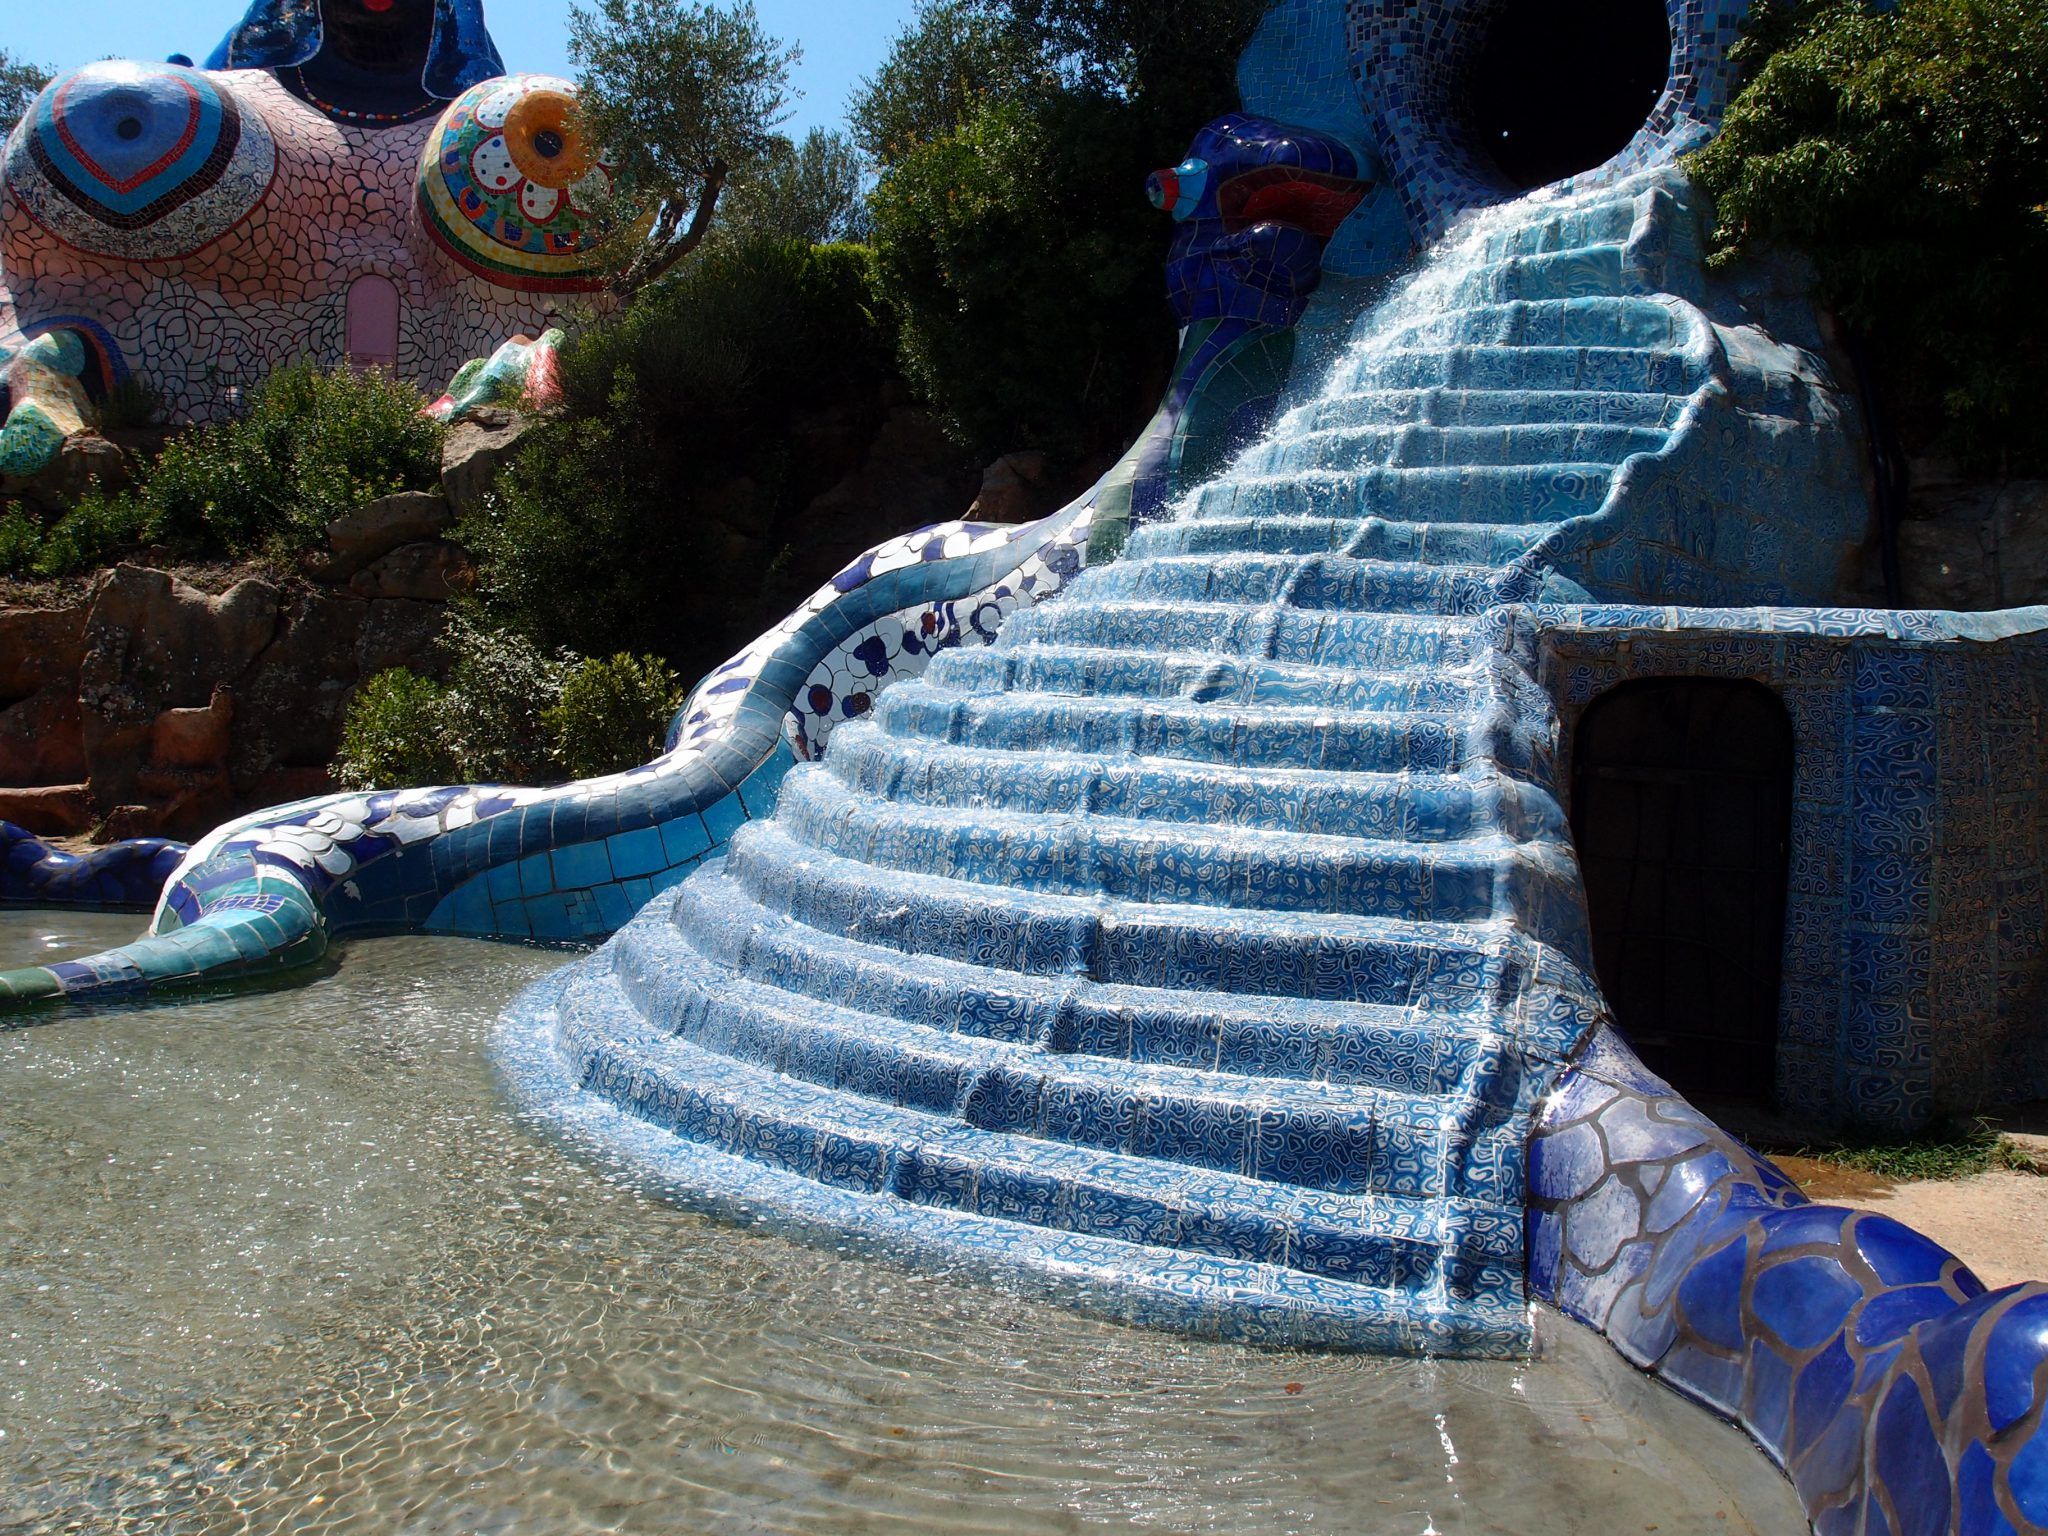 ...and cascades down a flight of tiled steps, into the pool of the Wheel of Fortune.